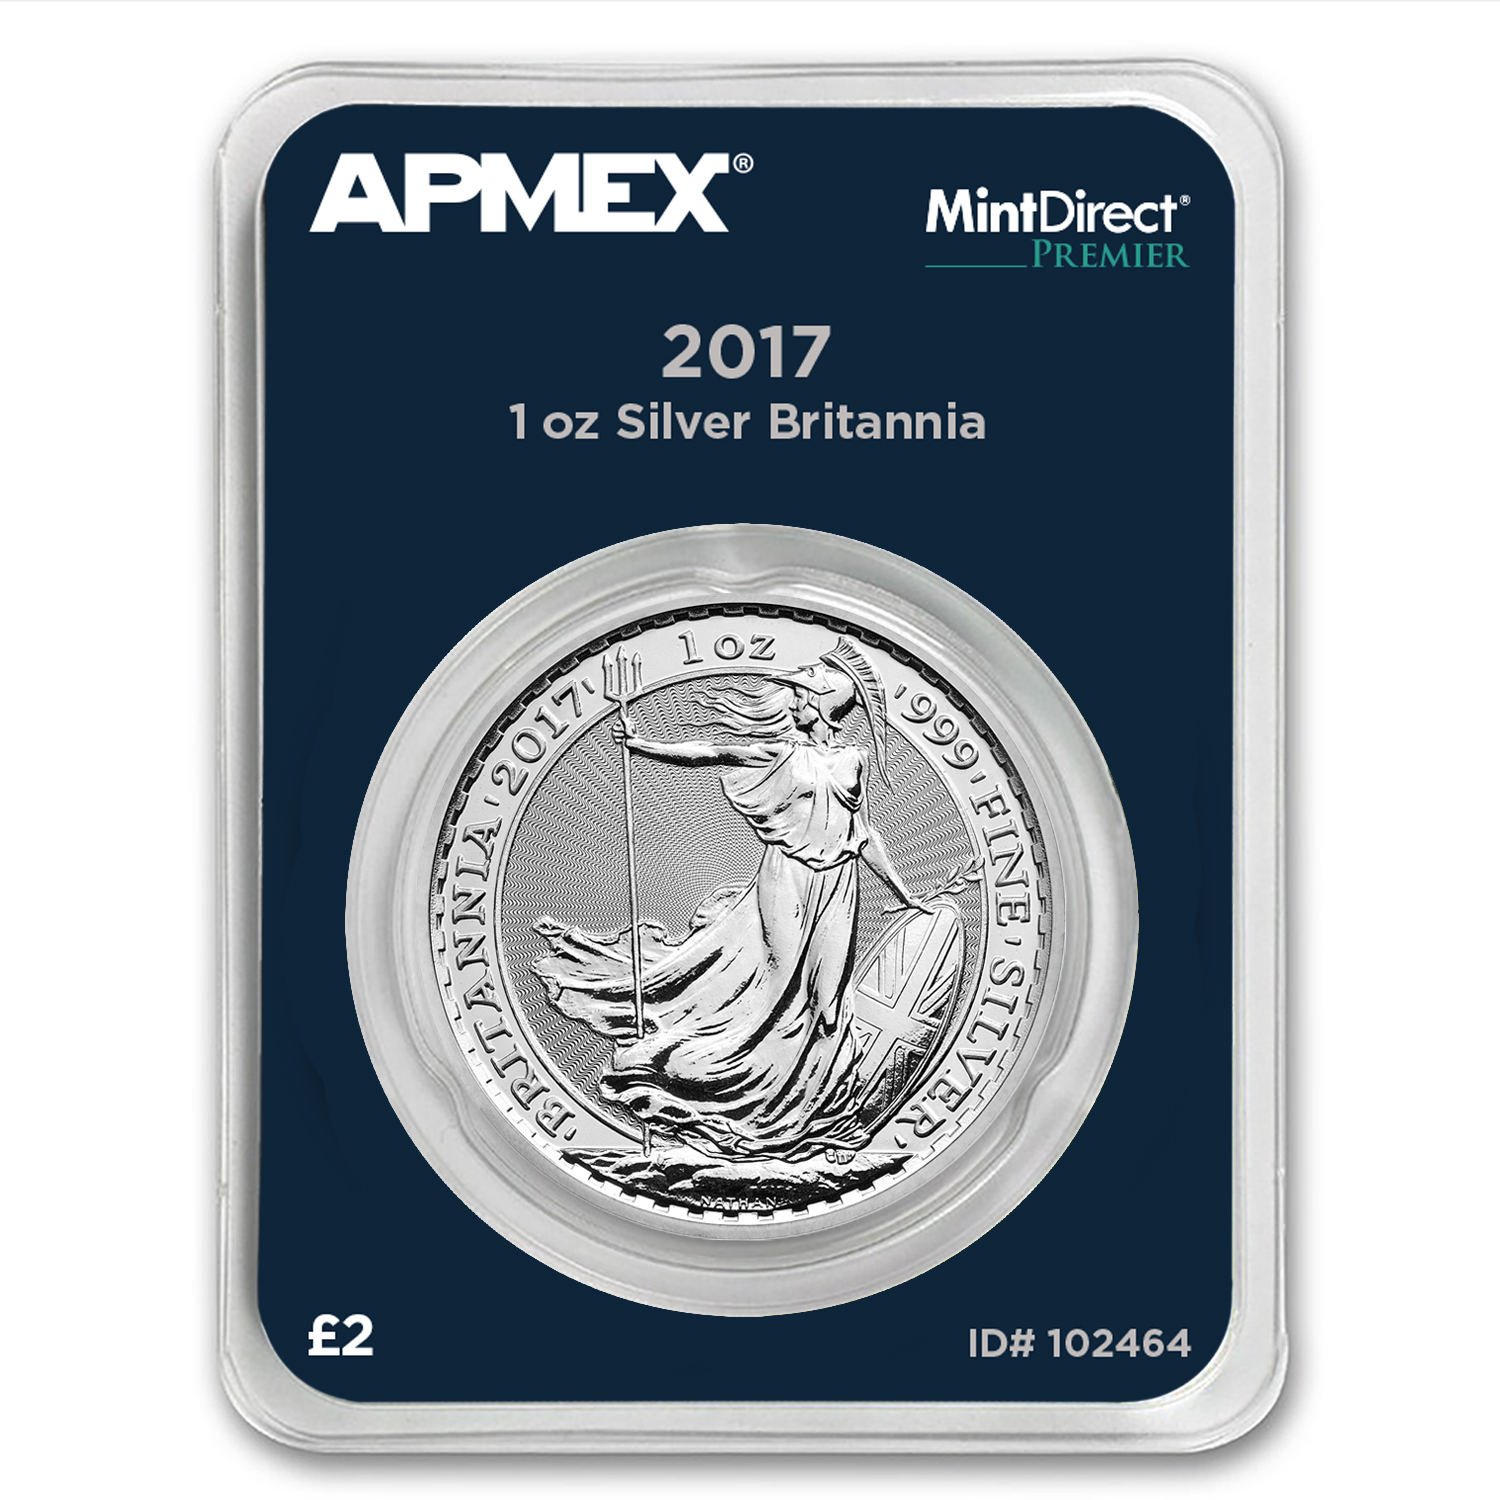 2017 Great Britain 1 oz Silver Britannia (MintDirect® Premier)